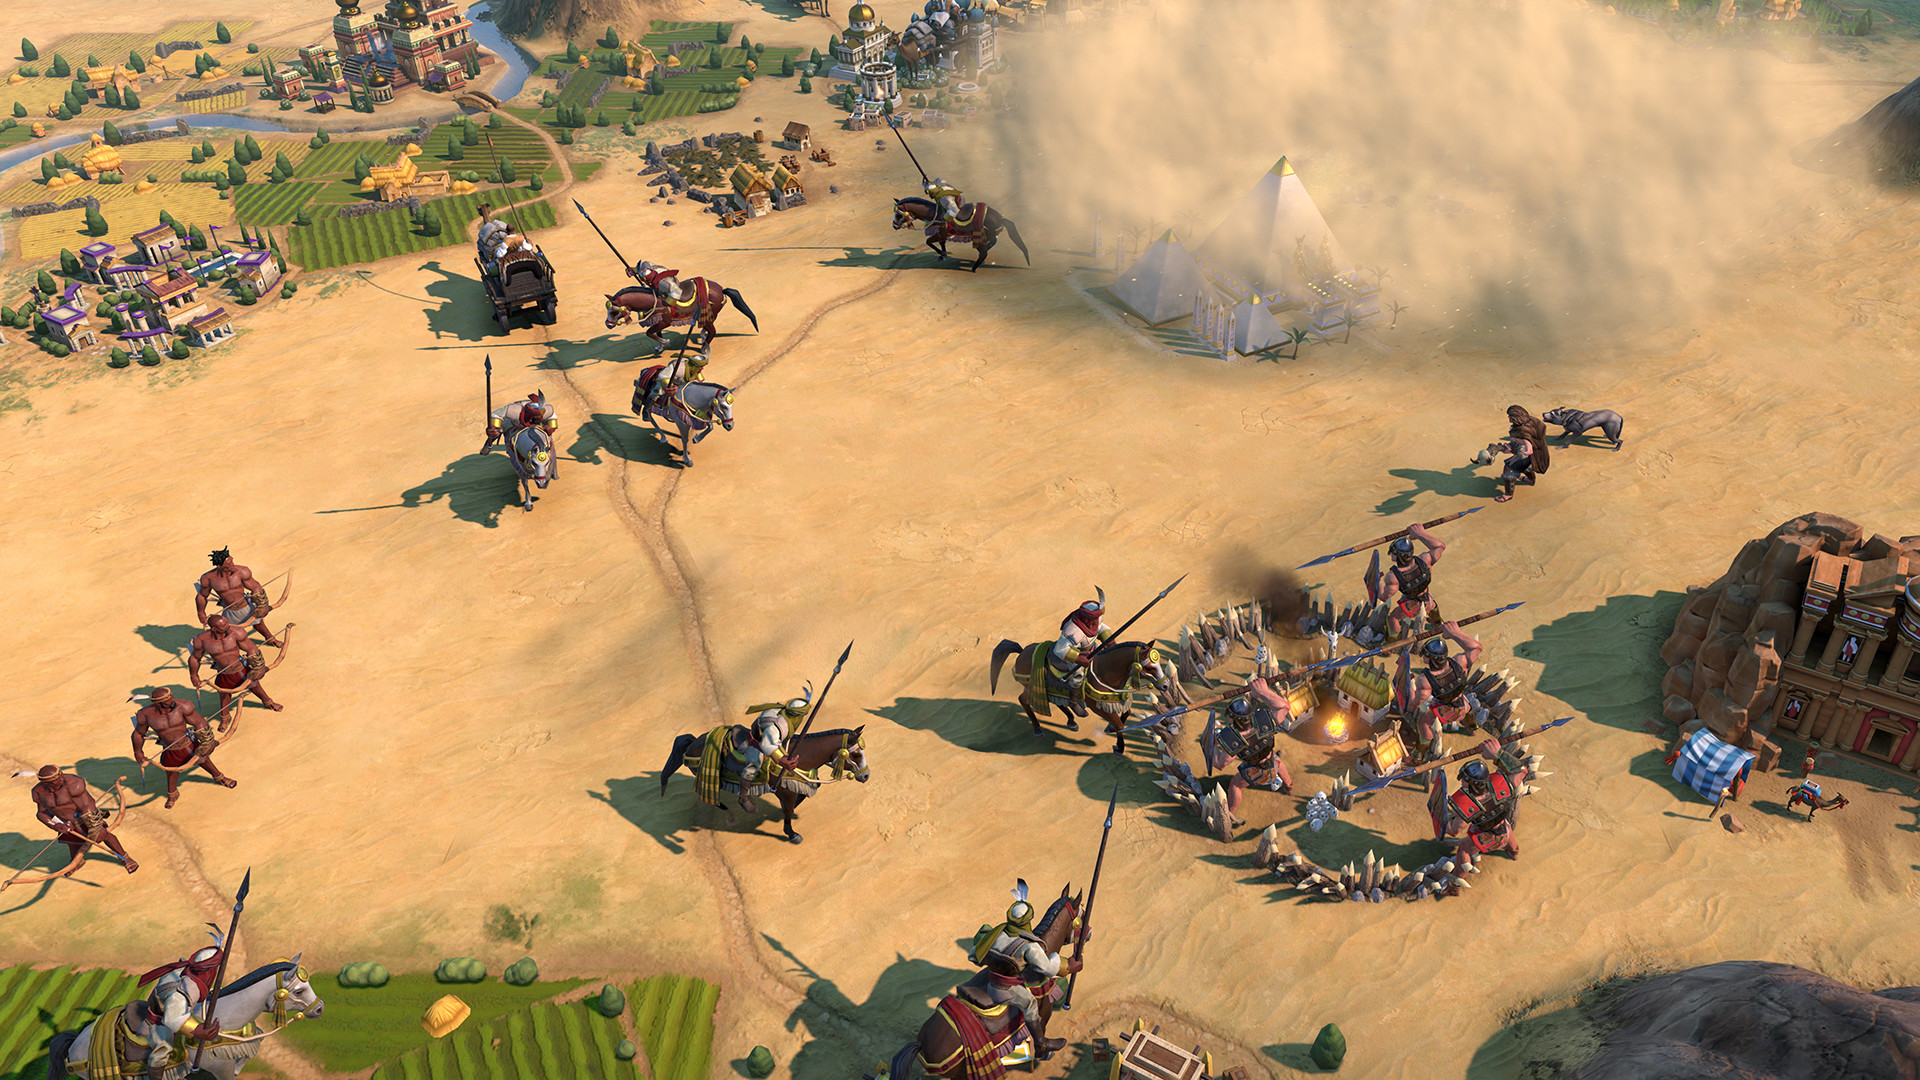 Mali heads to Civilization VI with Gathering Storm as a new